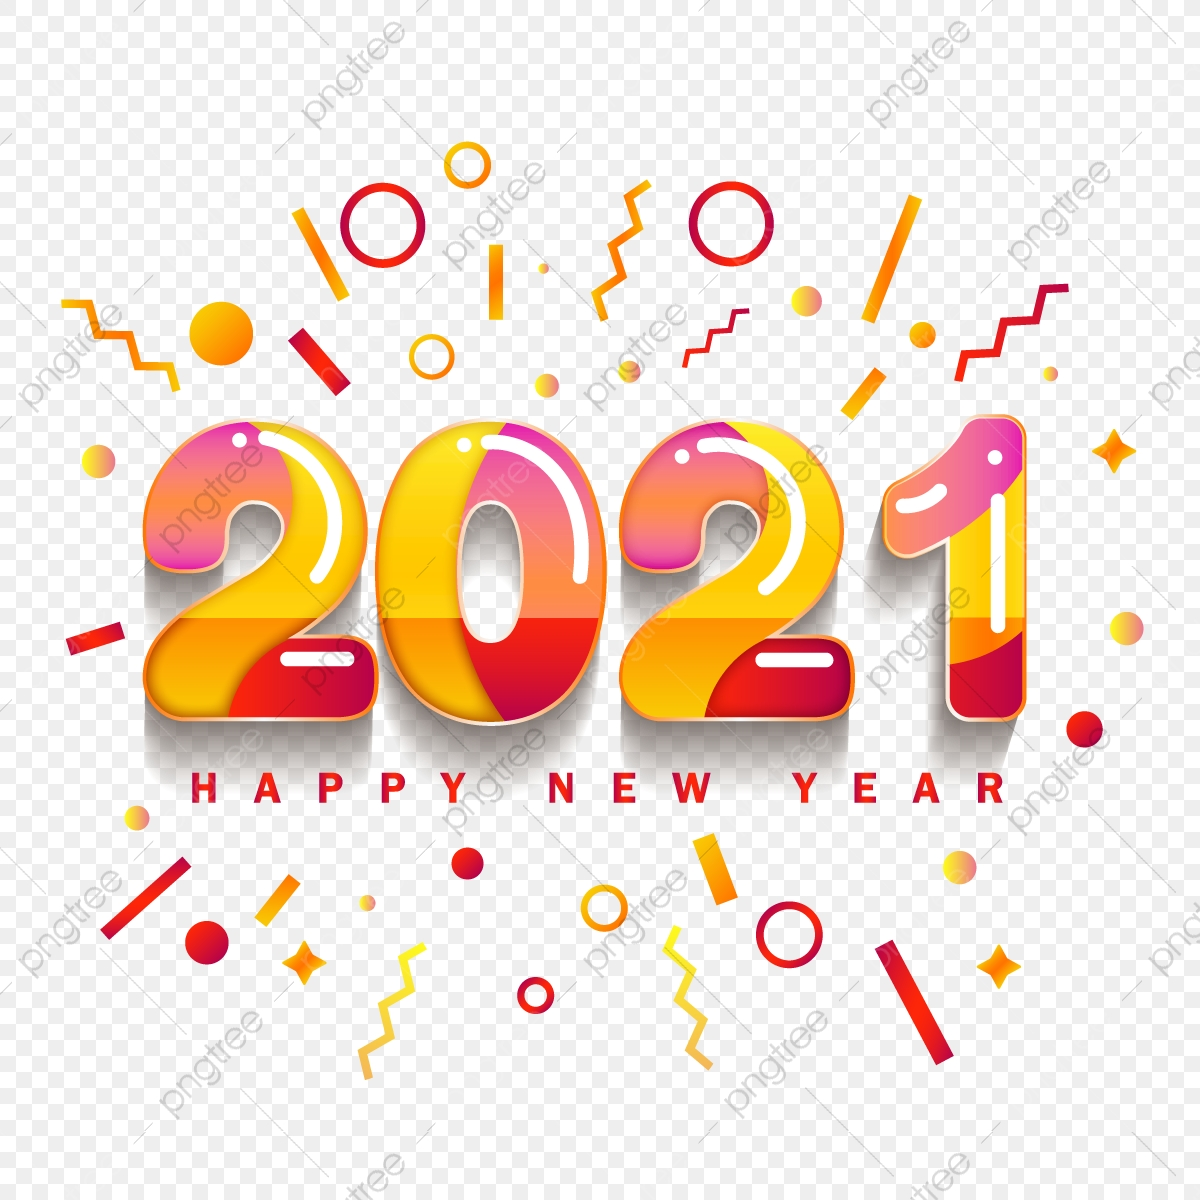 happy new year 2021 colorful jelly texture gradient numbers jelly texture gradient png and vector with transparent background for free download https pngtree com freepng happy new year 2021 colorful jelly texture gradient numbers 5461499 html